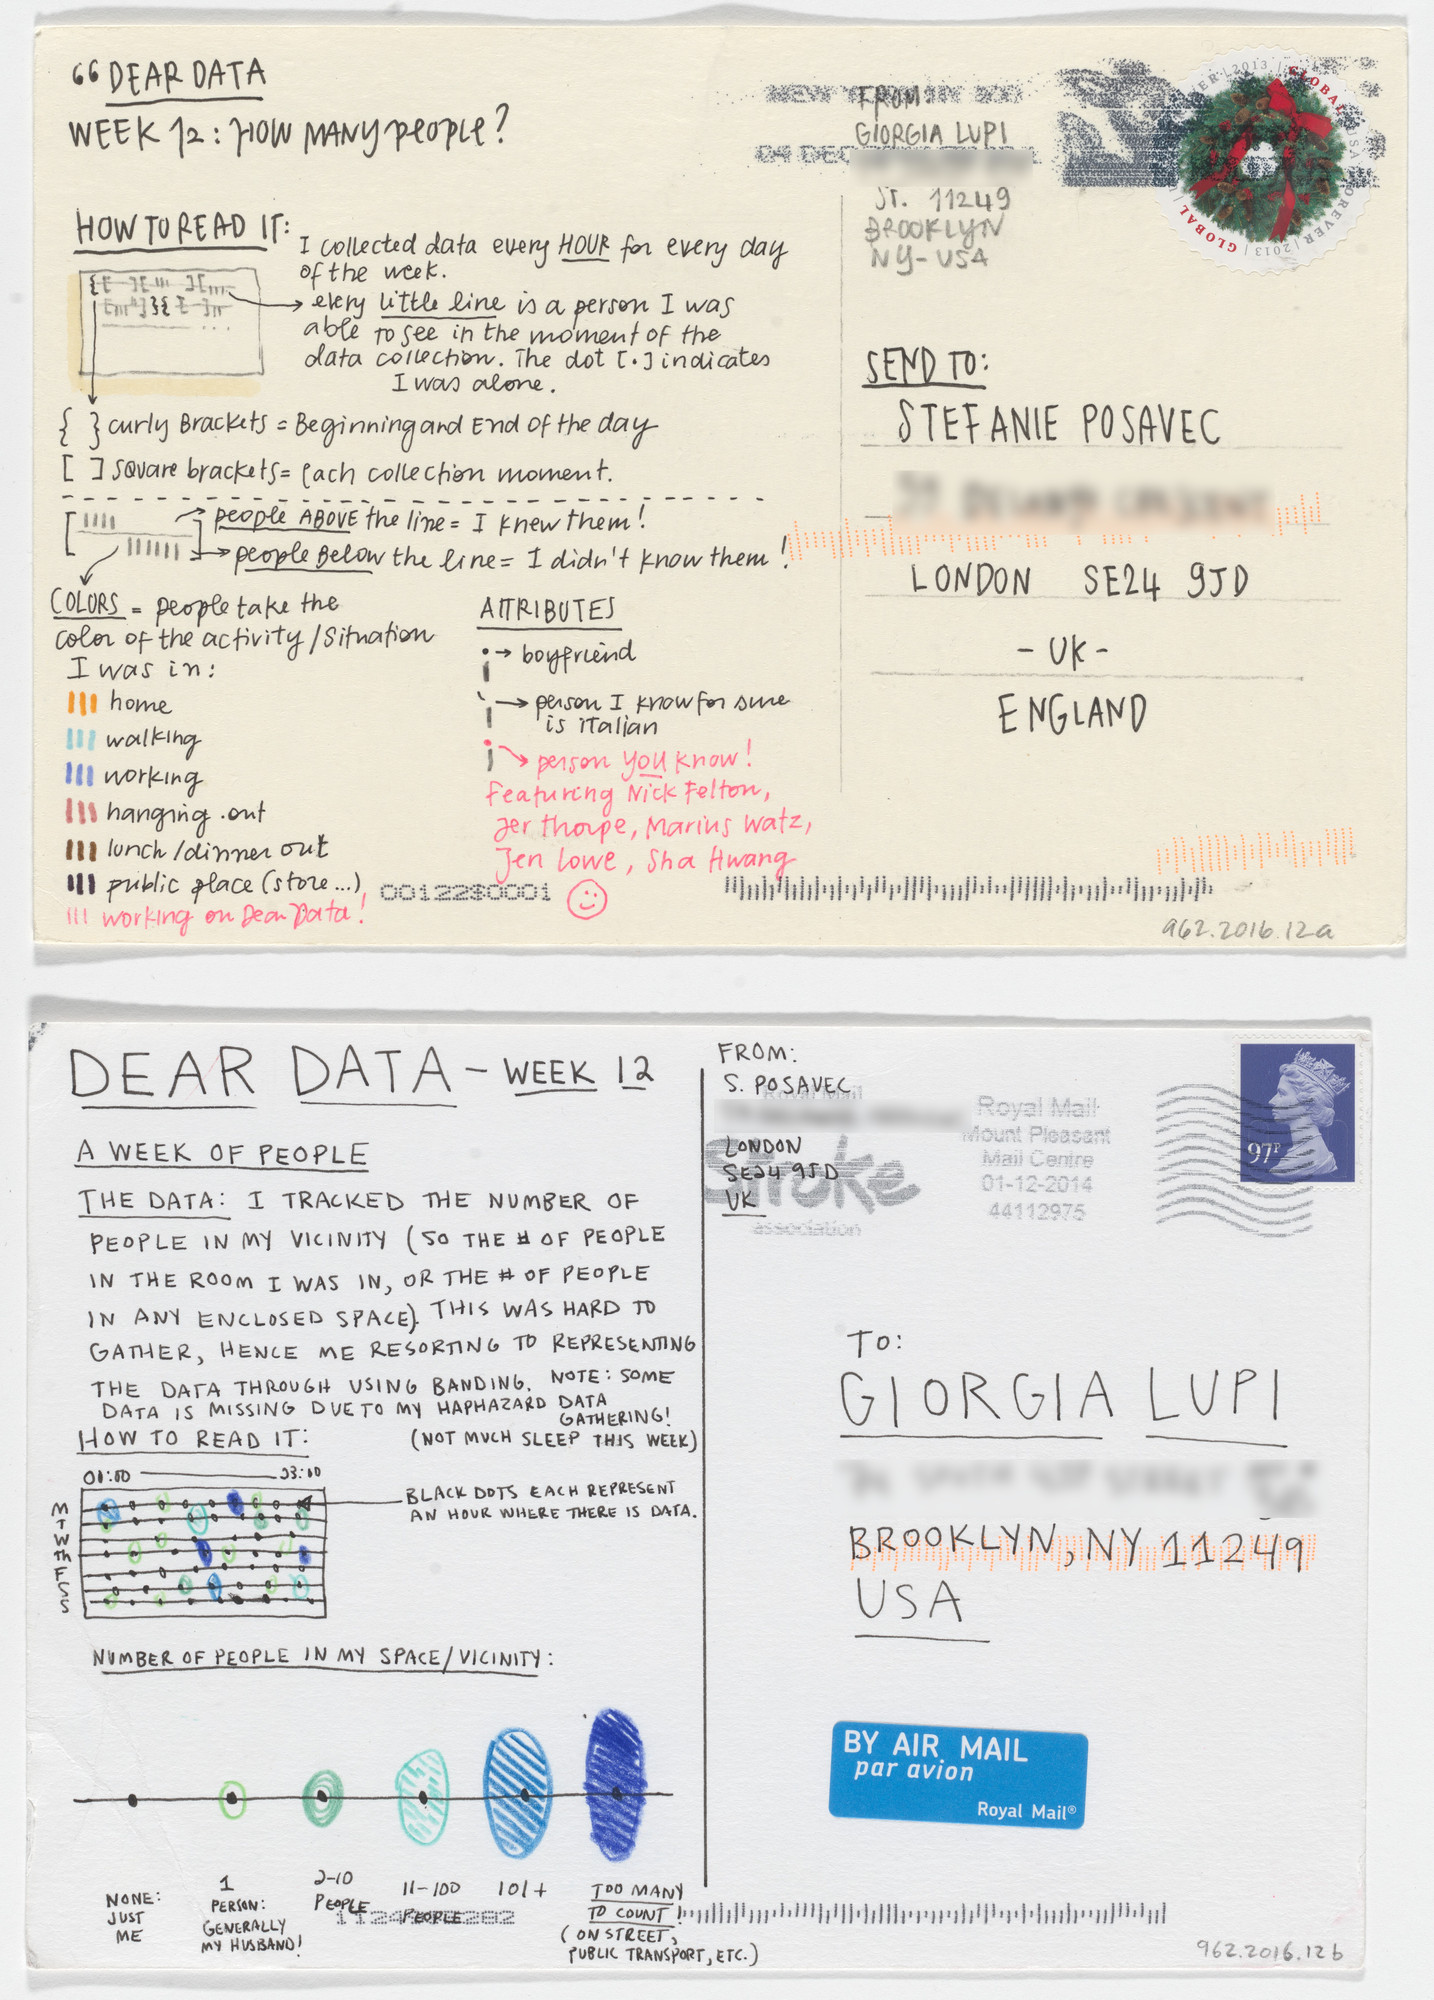 Giorgia Lupi, Stefanie Posavec. Dear Data: Week 12 (How Many People / A Week of People). 2014